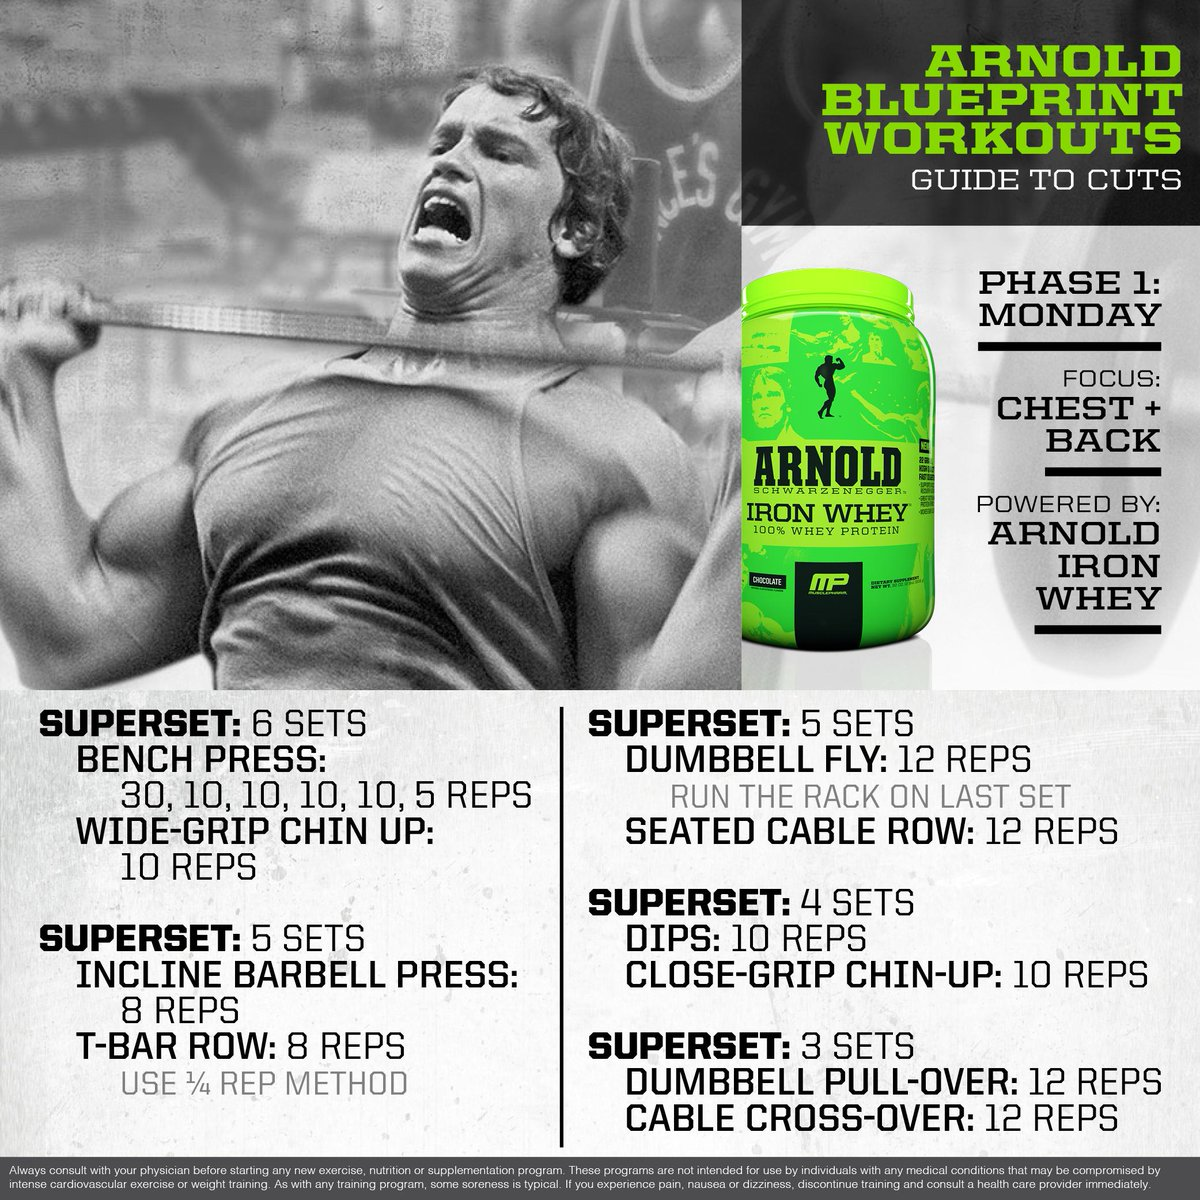 Musclepharm on twitter mp workout of the day arnold blueprint musclepharm on twitter mp workout of the day arnold blueprint to cut chest and back powered by ironwhey httptva19bu1t9e malvernweather Gallery